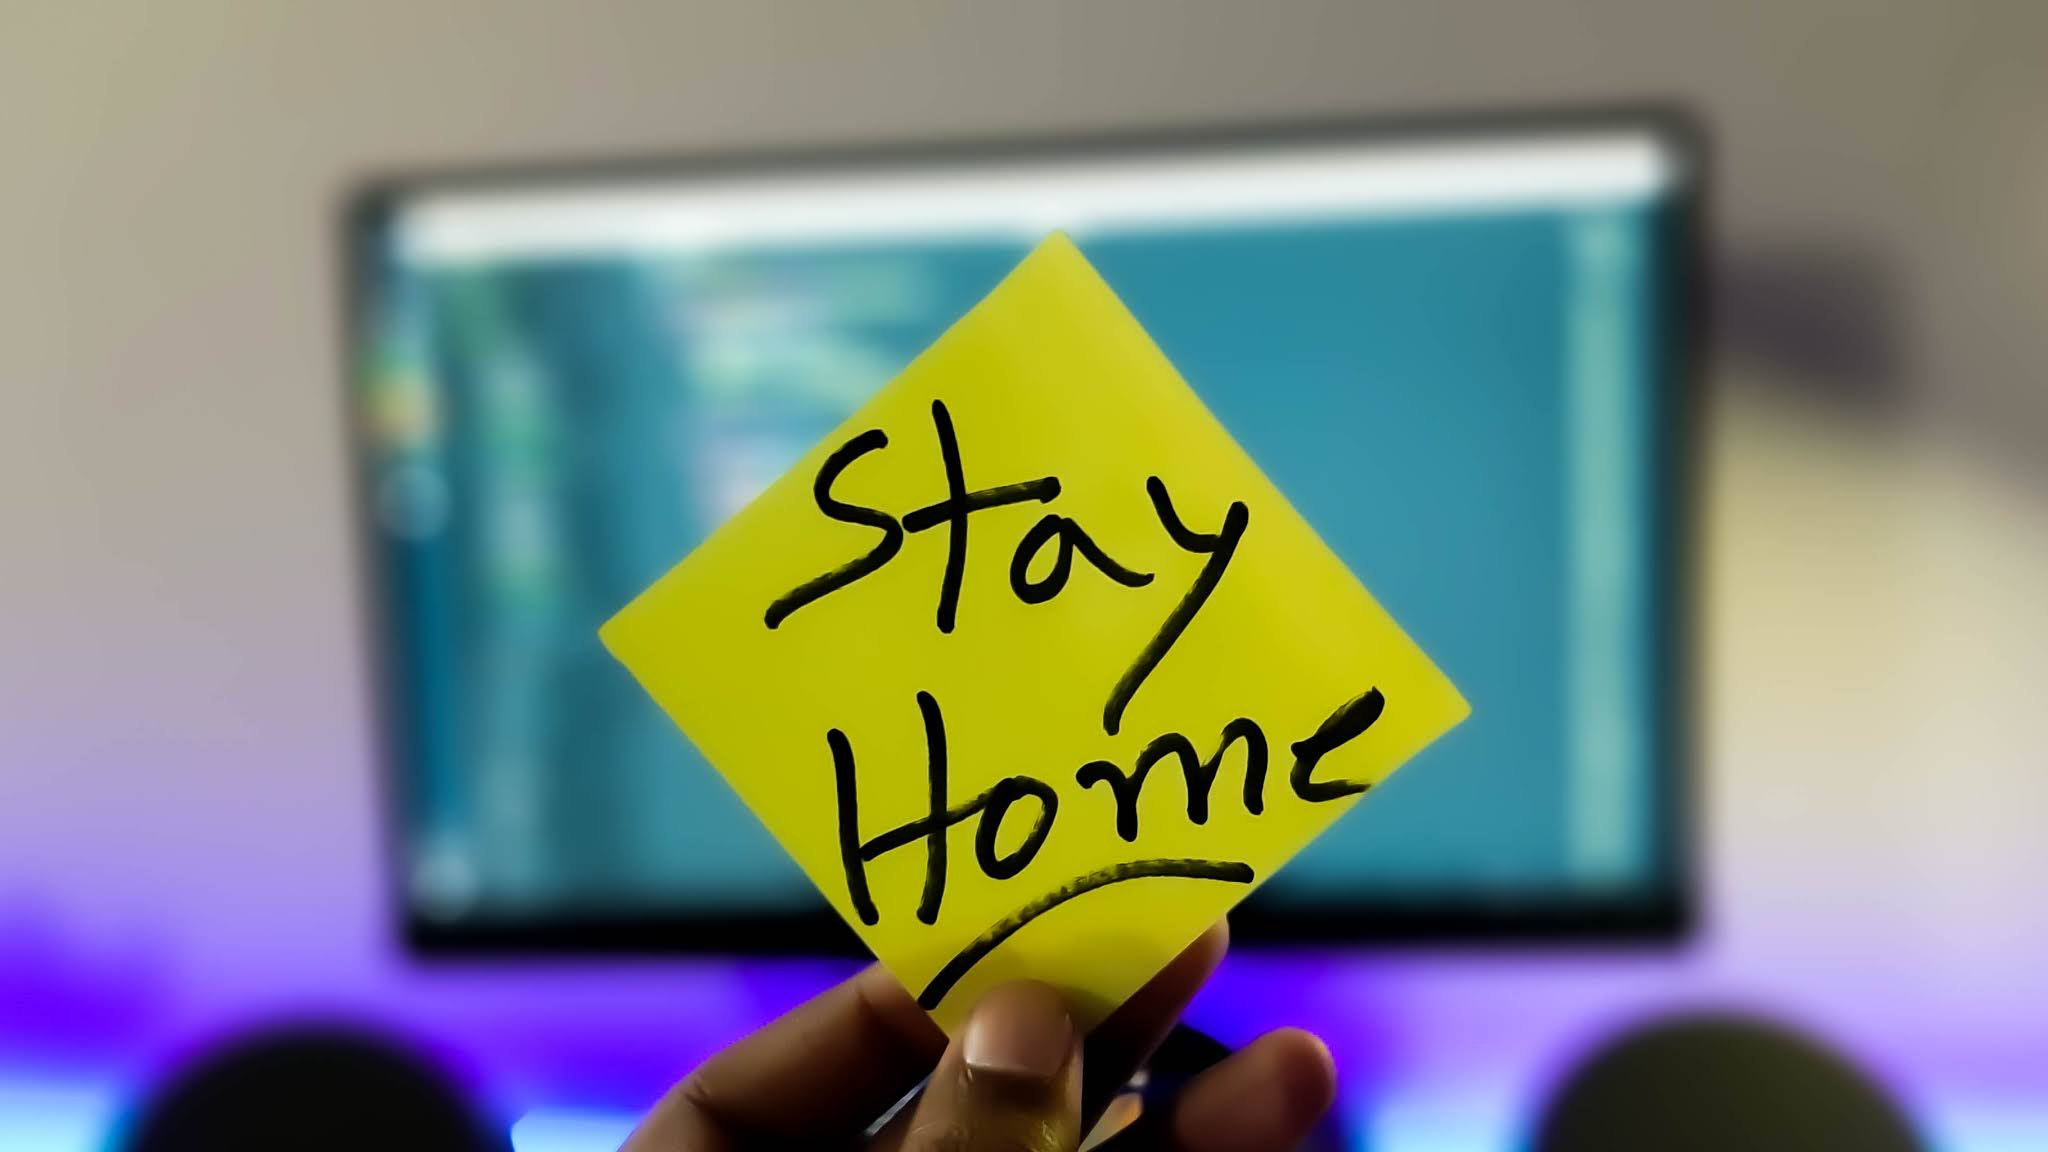 50+ Stay home stay safe awareness hd image messages for covid 19 coronavirus